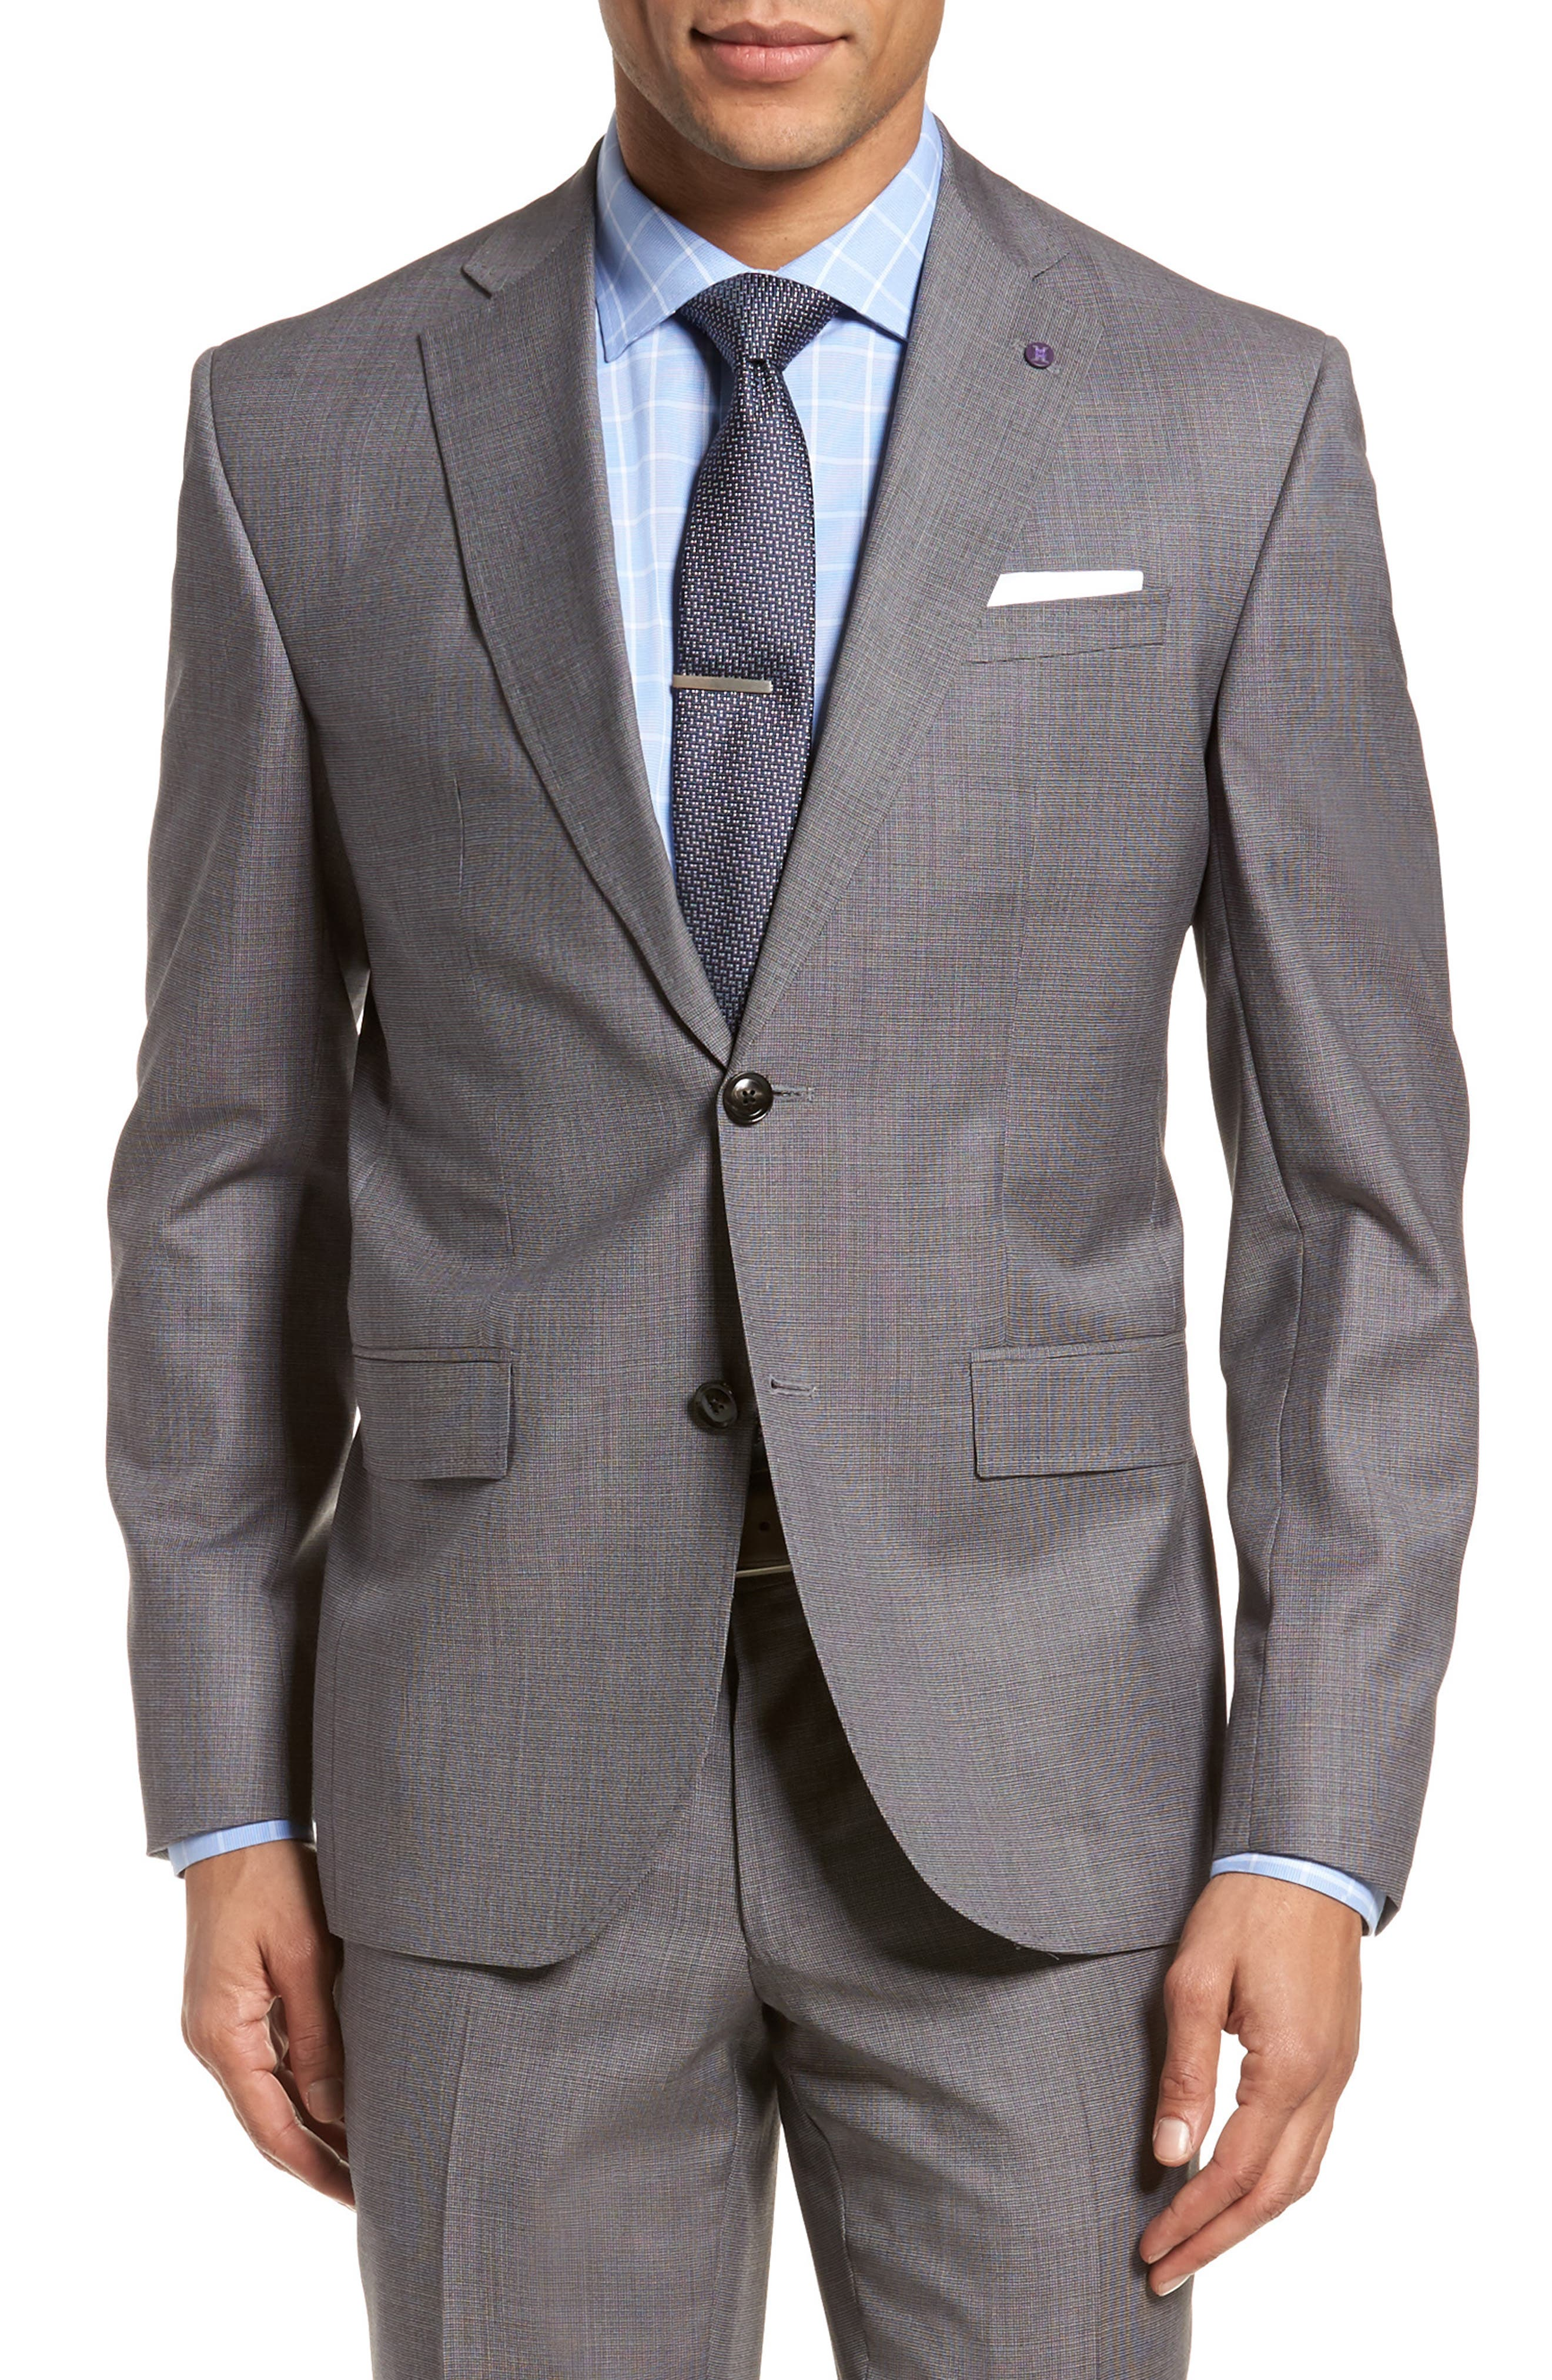 Roger Extra Slim Fit Solid Wool Suit,                             Alternate thumbnail 6, color,                             Taupe